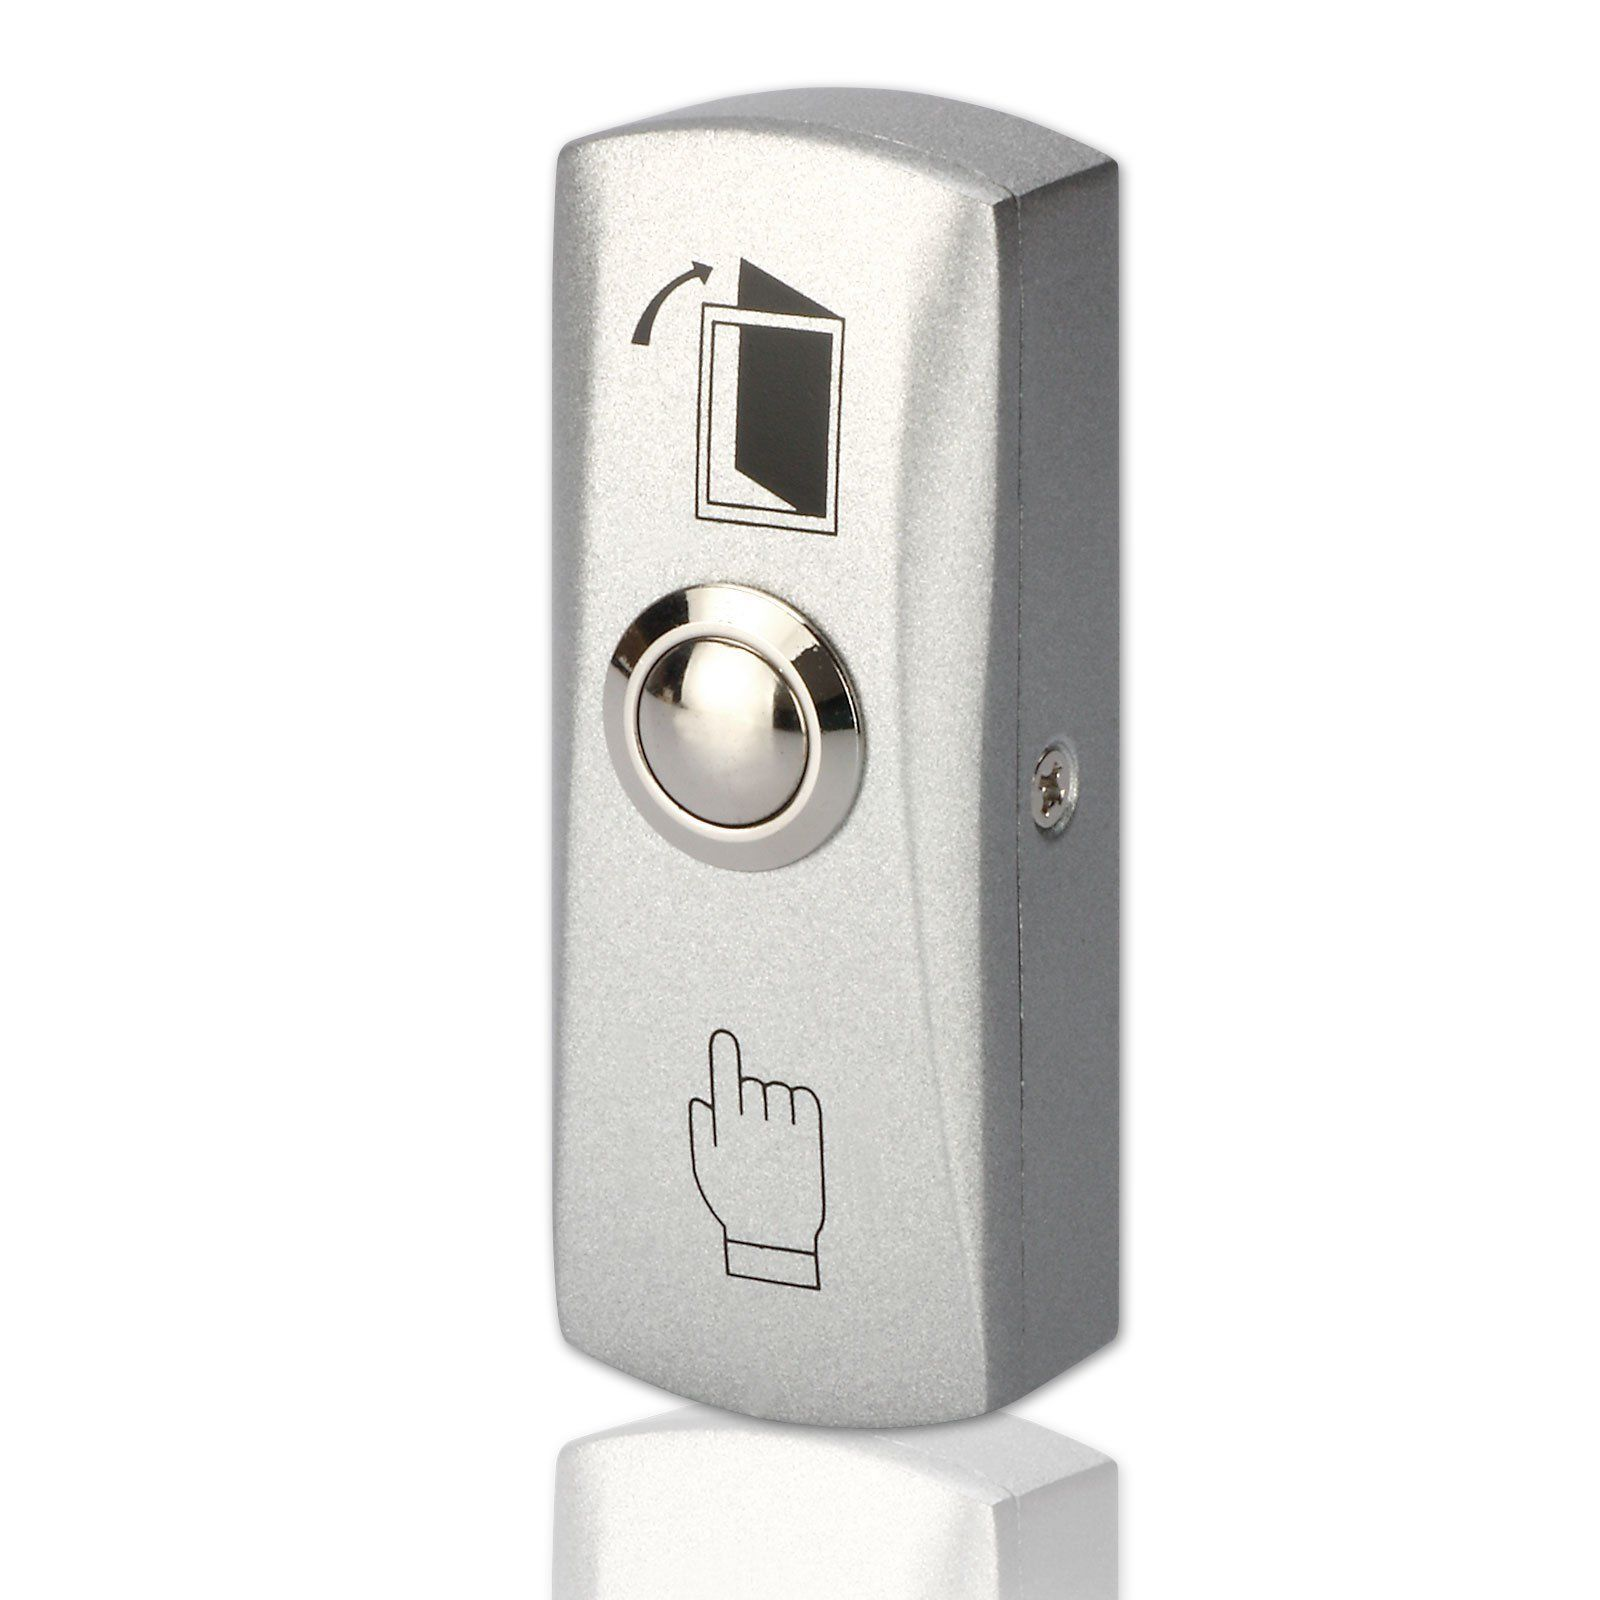 10 49 Door Touch Exit Button Push Home Switch Panel Access Control Zinc Alloy Ebay Electronics Home Switch Access Control Zinc Alloy